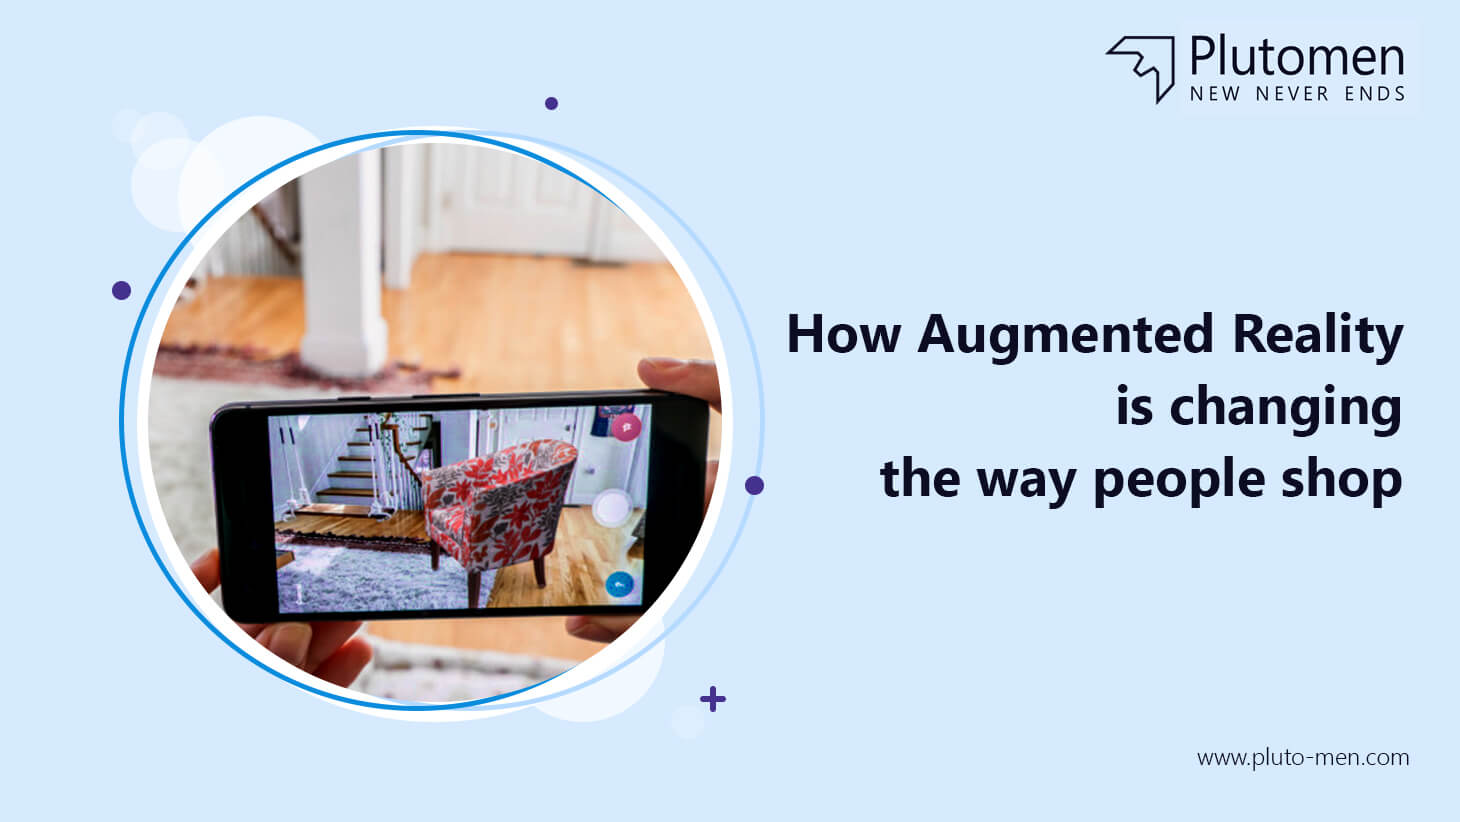 How Augmented Reality is changing the way people shop?